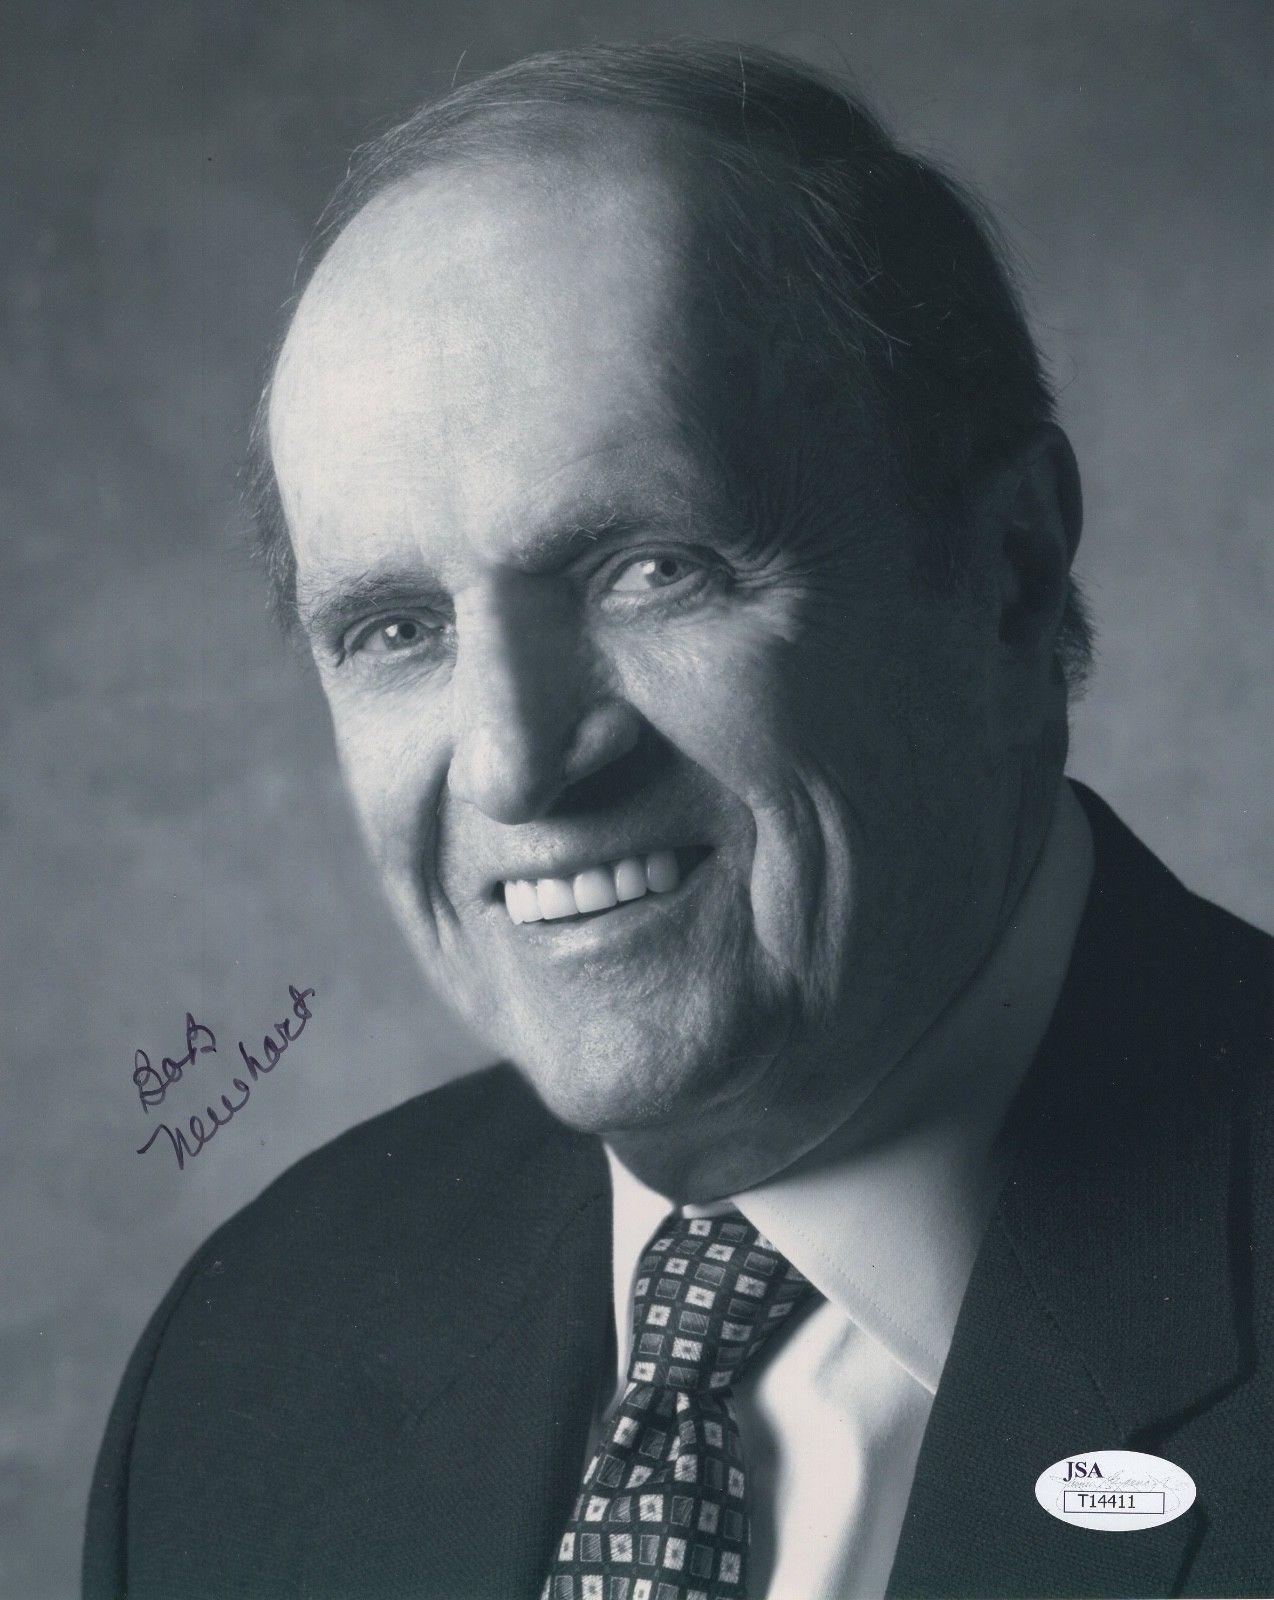 BOB NEWHART HAND SIGNED 8x10 PHOTO AWESOME POSE NEWHART SHOW - JSA Certified